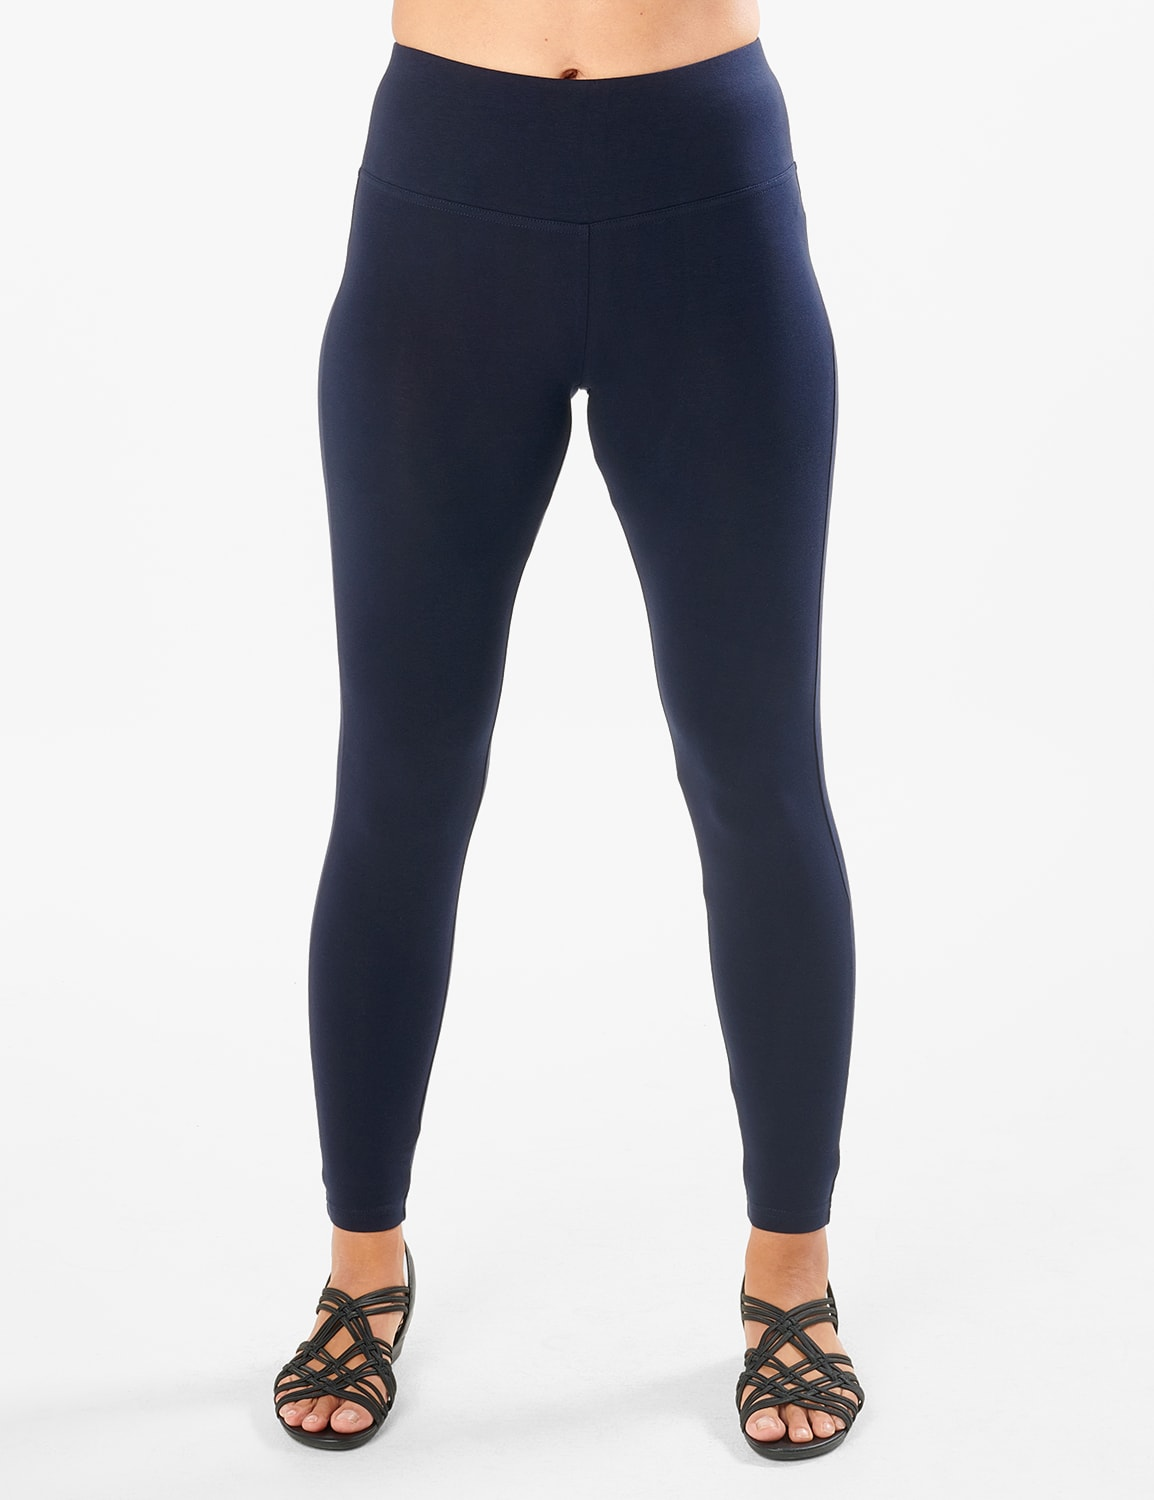 Tummy Control Legging - Navy - Front